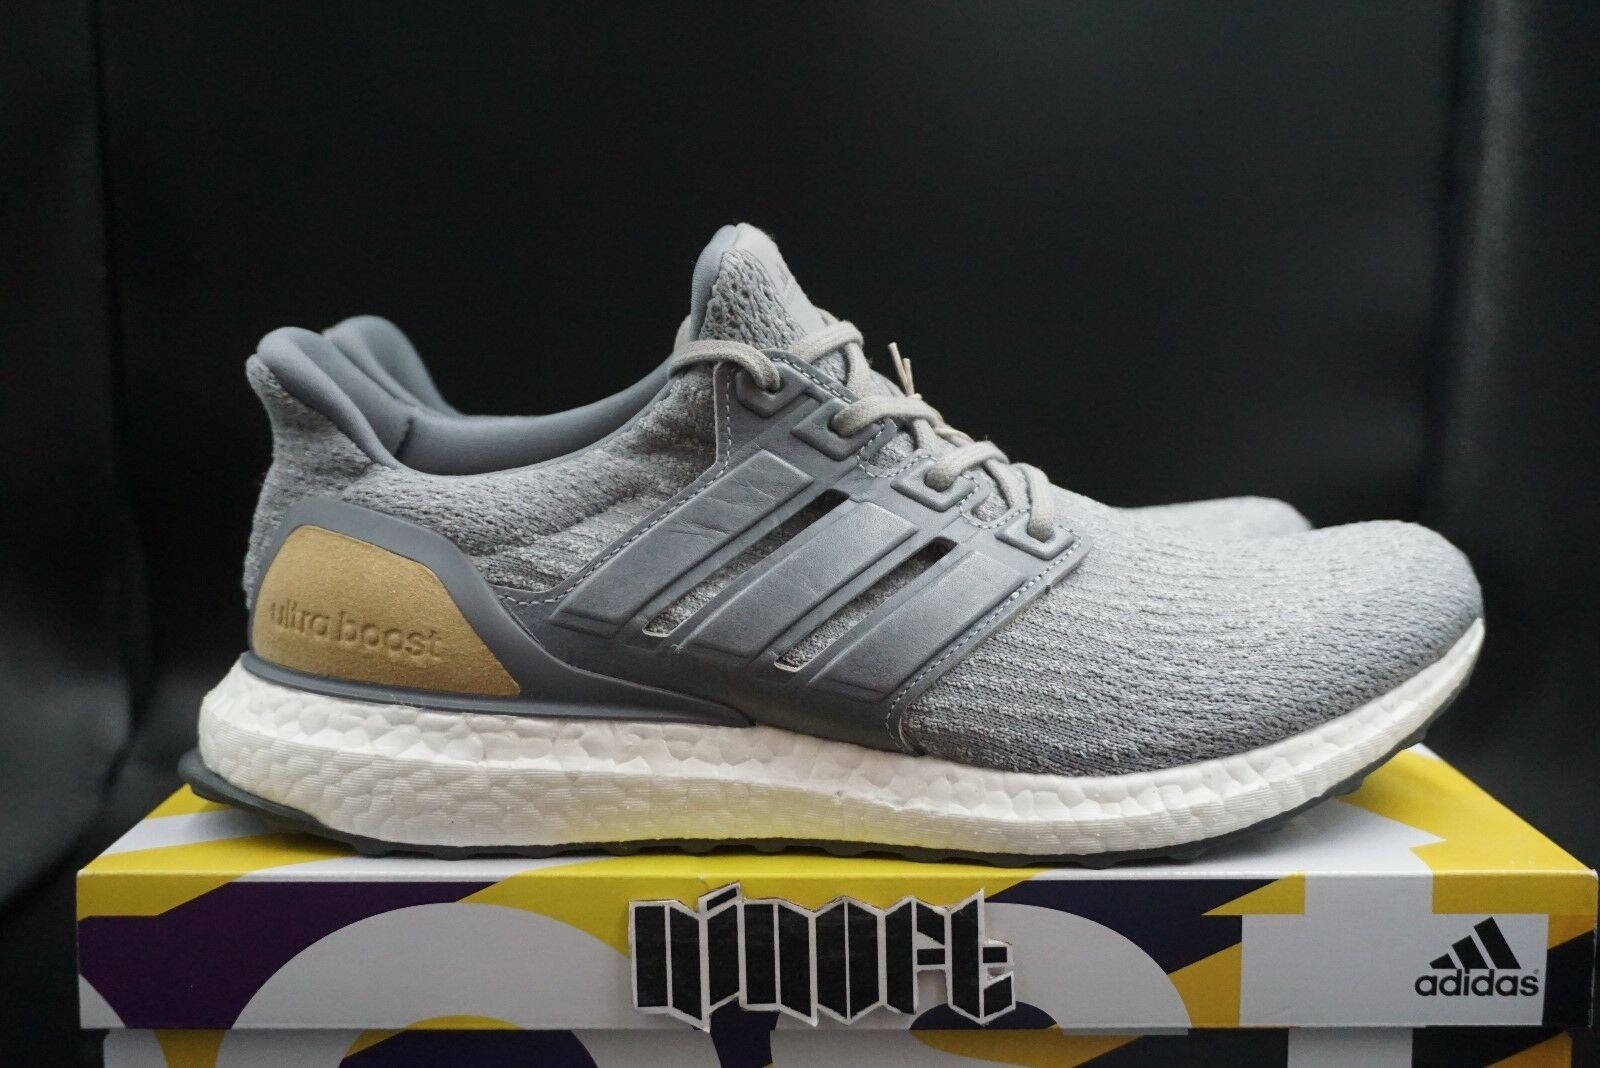 Adidas Ultra Boost 3.0 Limited Leather Cage grigio Suede Linen Khaki BB1092